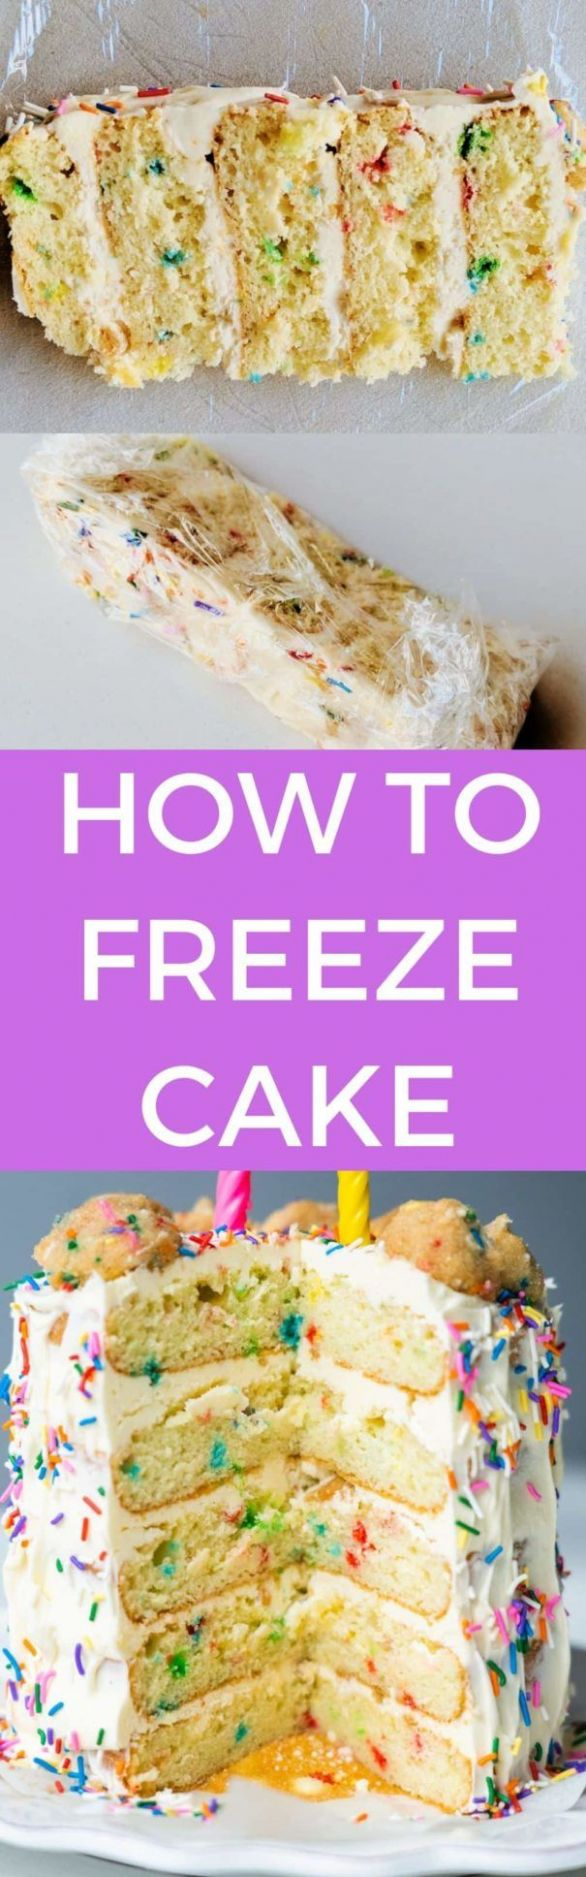 How To Freeze Cake - Easy Step by Step Directions - Cake Recipes You Can Freeze